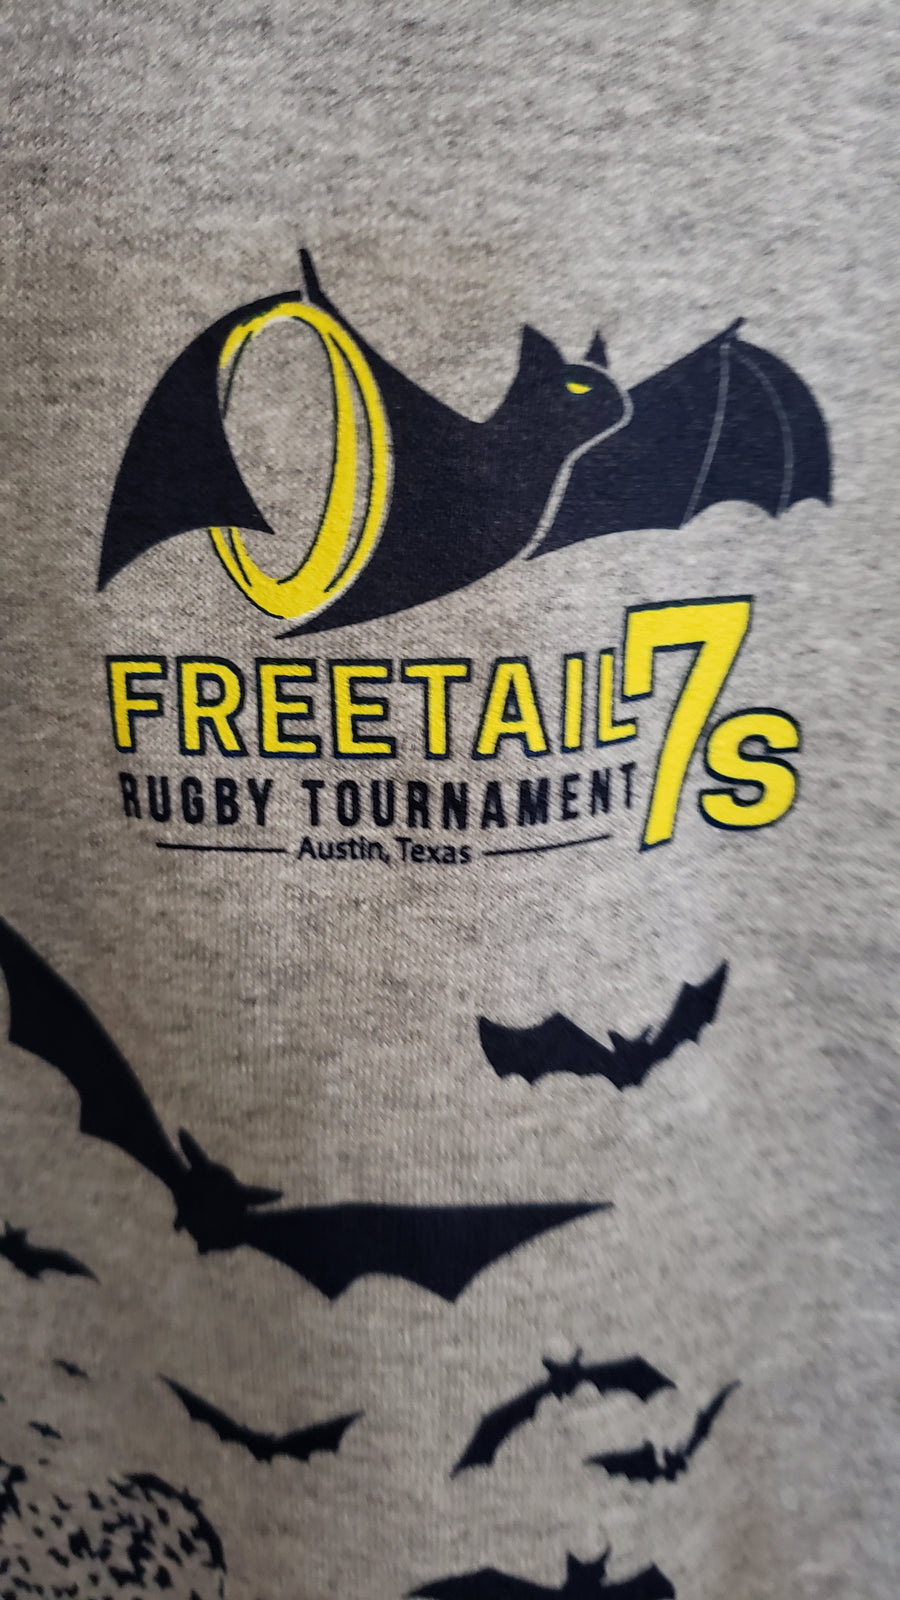 HOODIE - Freetail 7s Tournament